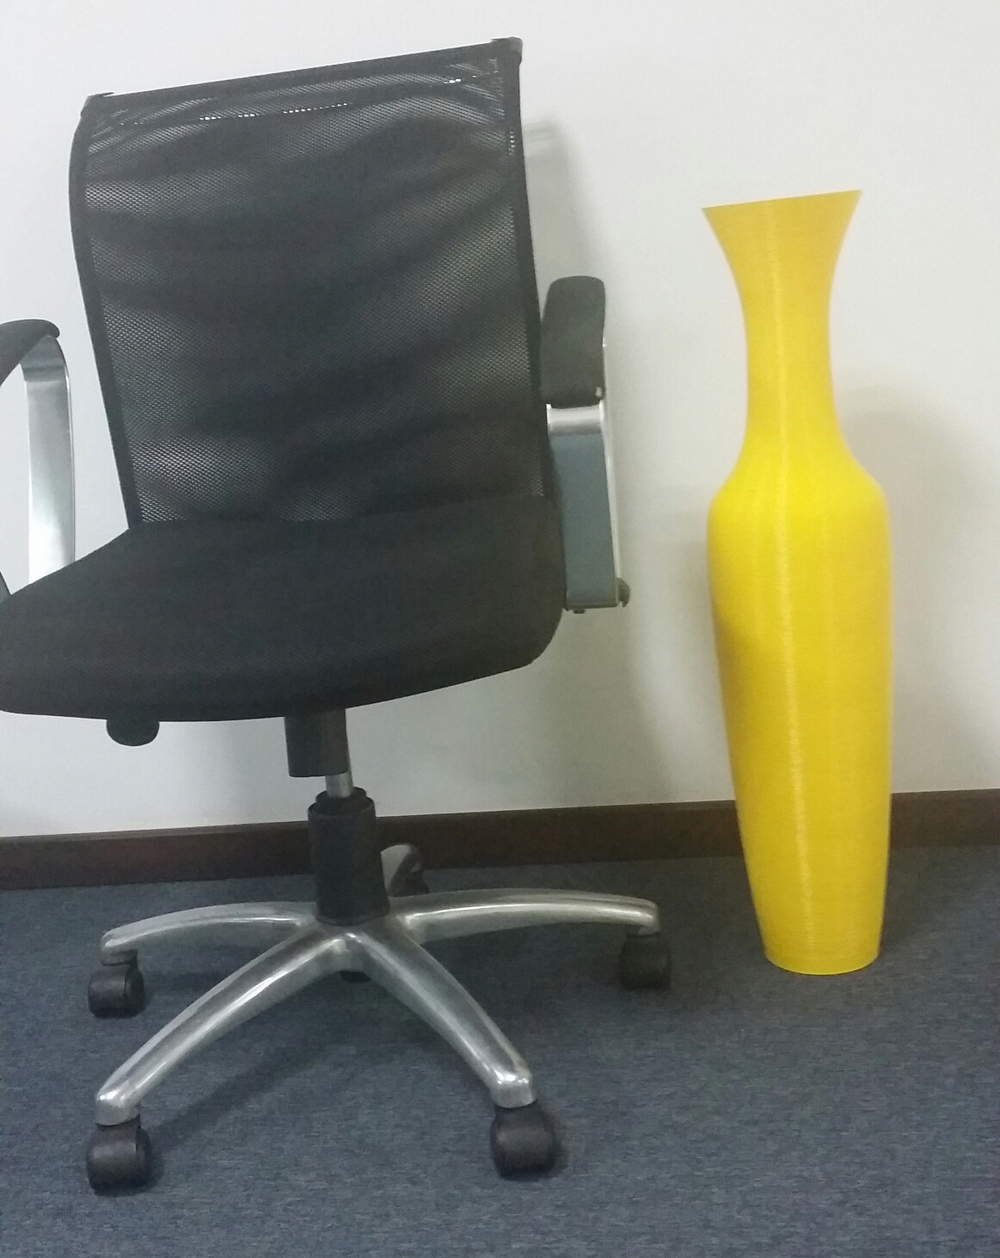 A giant vase printed on the CoLiDo Mega 3D printer